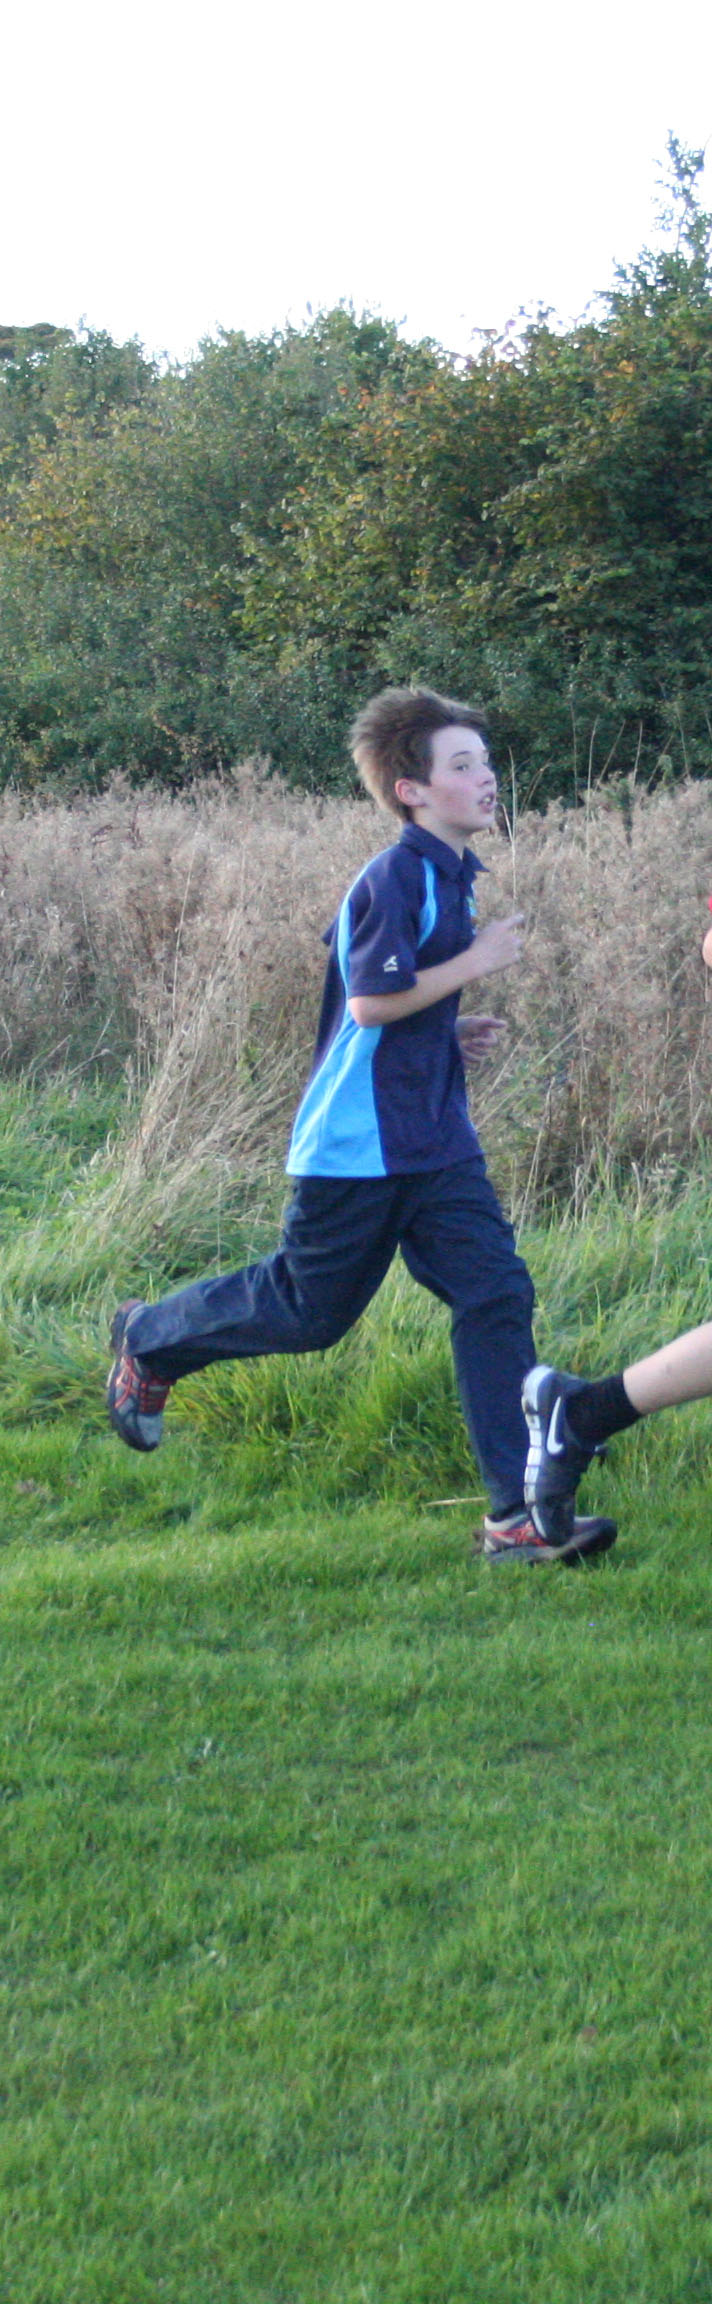 Cross Country 2015 004.JPG